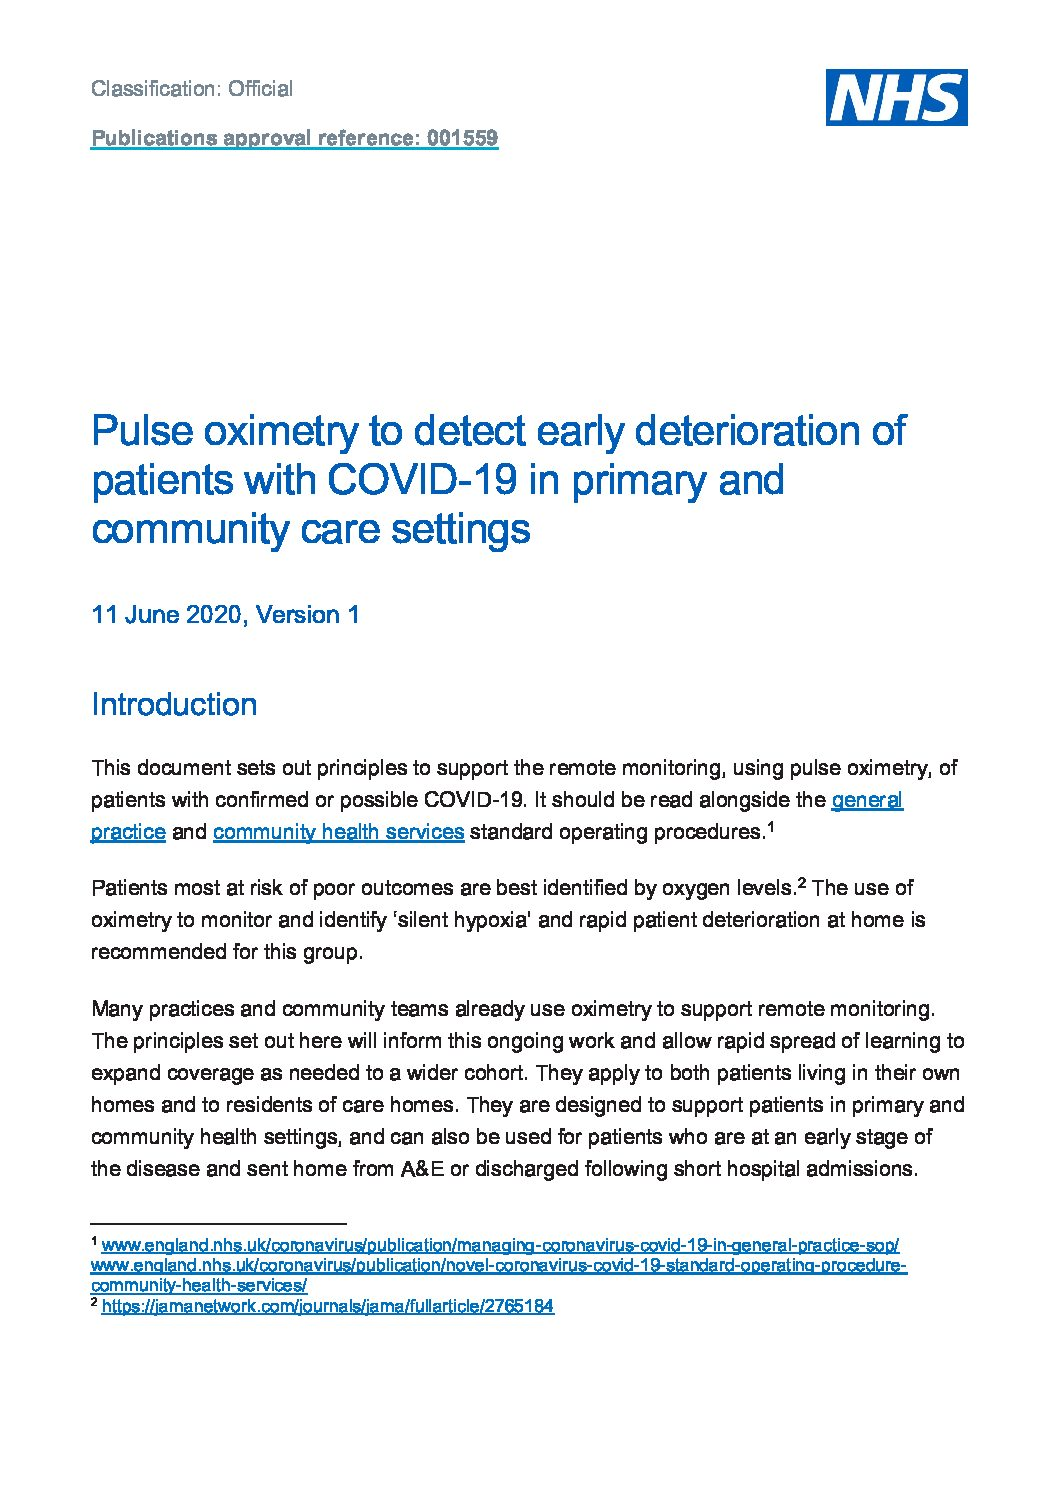 Pulse oximetry and remote monitoring